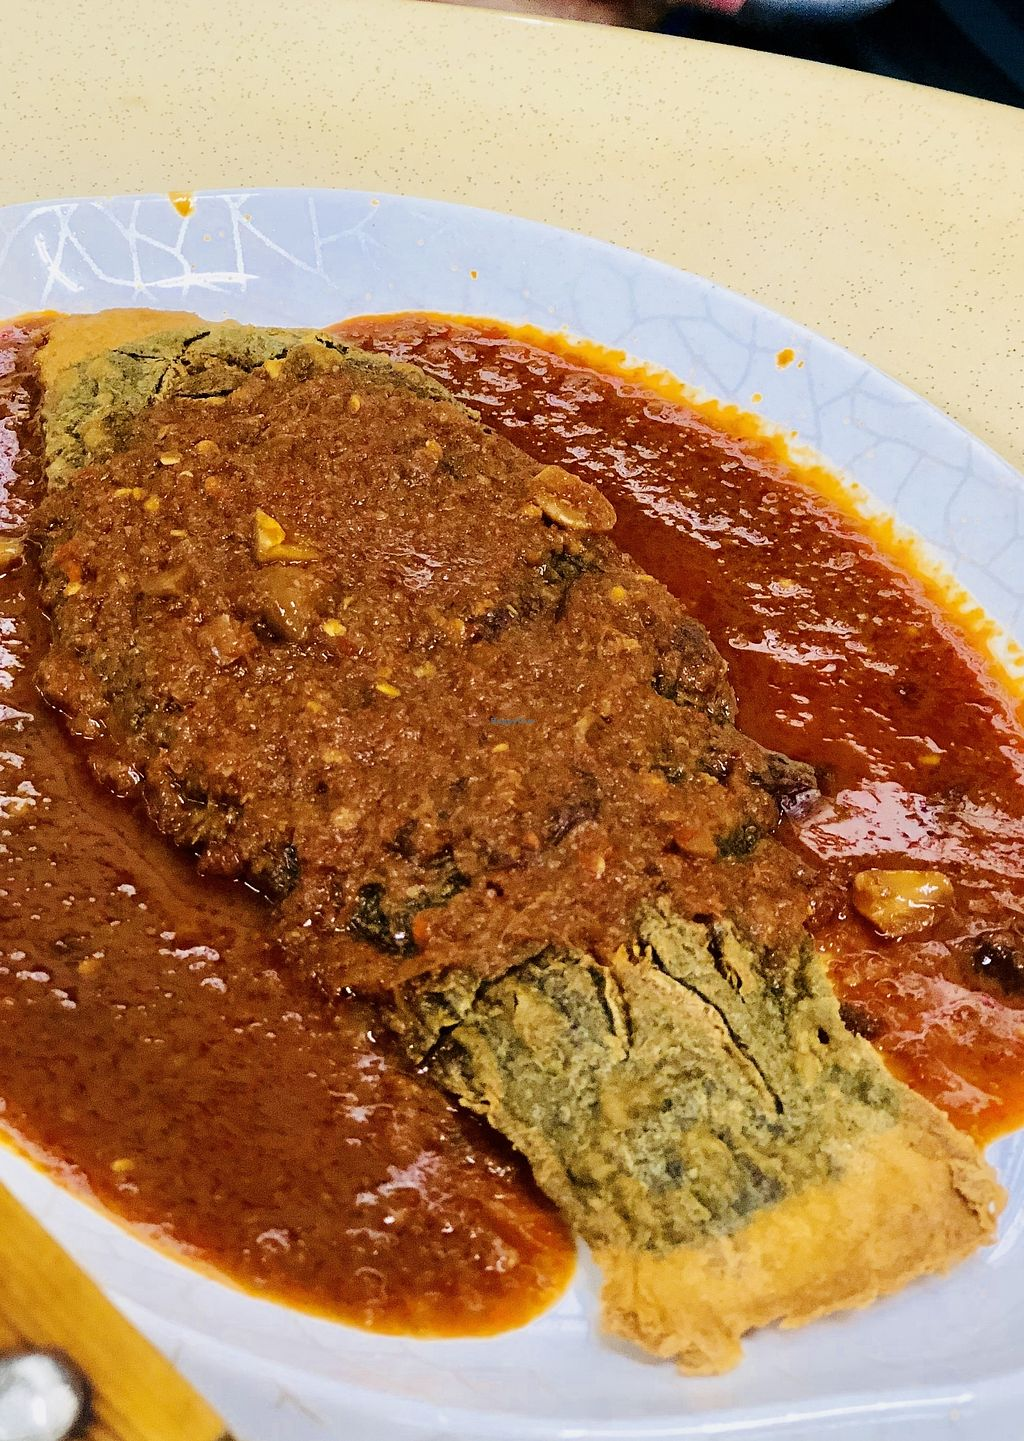 """Photo of Green Lane Vegetarian Food  by <a href=""""/members/profile/CherylQuincy"""">CherylQuincy</a> <br/>Stir fried chilli vegetarian fish <br/> February 9, 2018  - <a href='/contact/abuse/image/79480/356898'>Report</a>"""